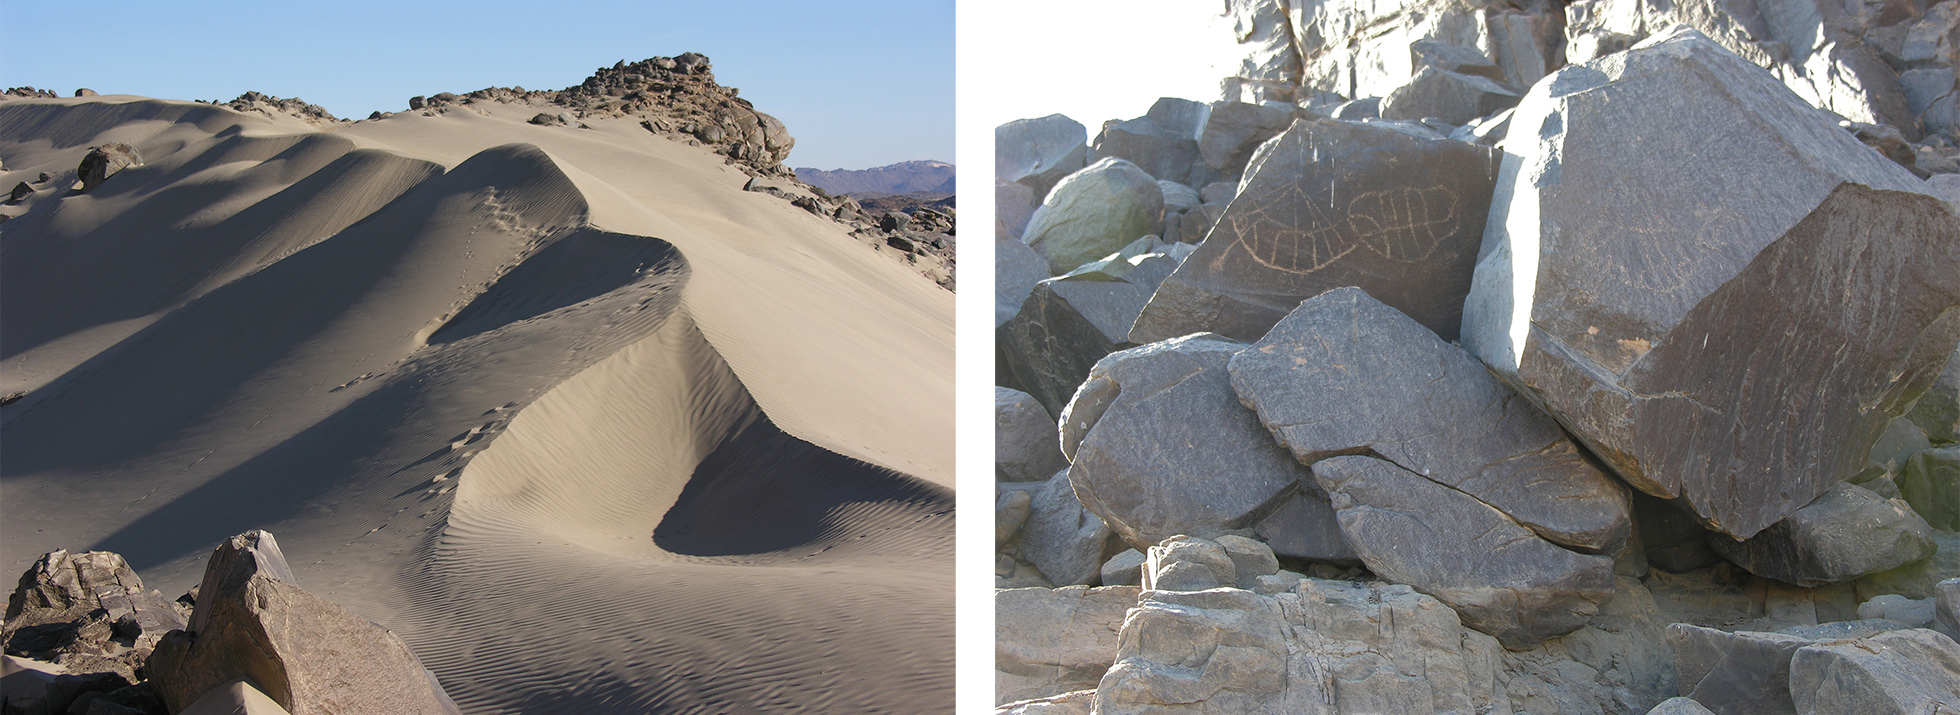 Two photographs of the Kulubnarti countryside. On the left, a photograph of large sandy dunes. On the right, a rocky outcrop with boat graffiti visible on some of the rocks.